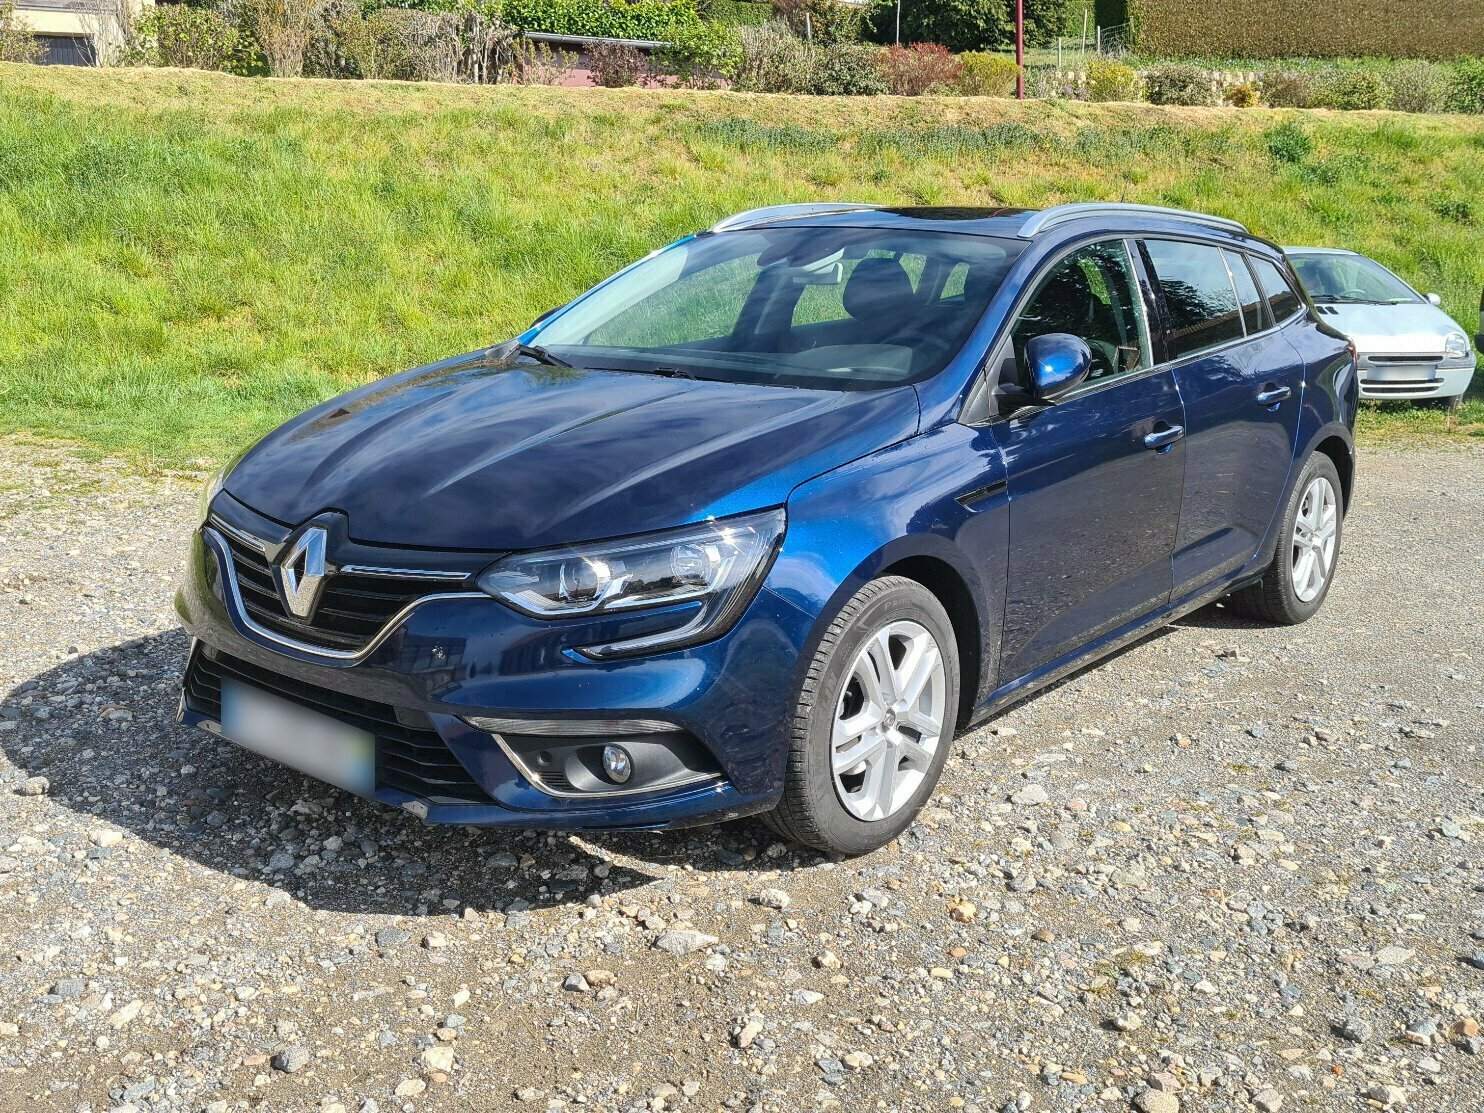 RENAULT MEGANE ESTATE 1.5 BLUEDCI 115 BUSINESS